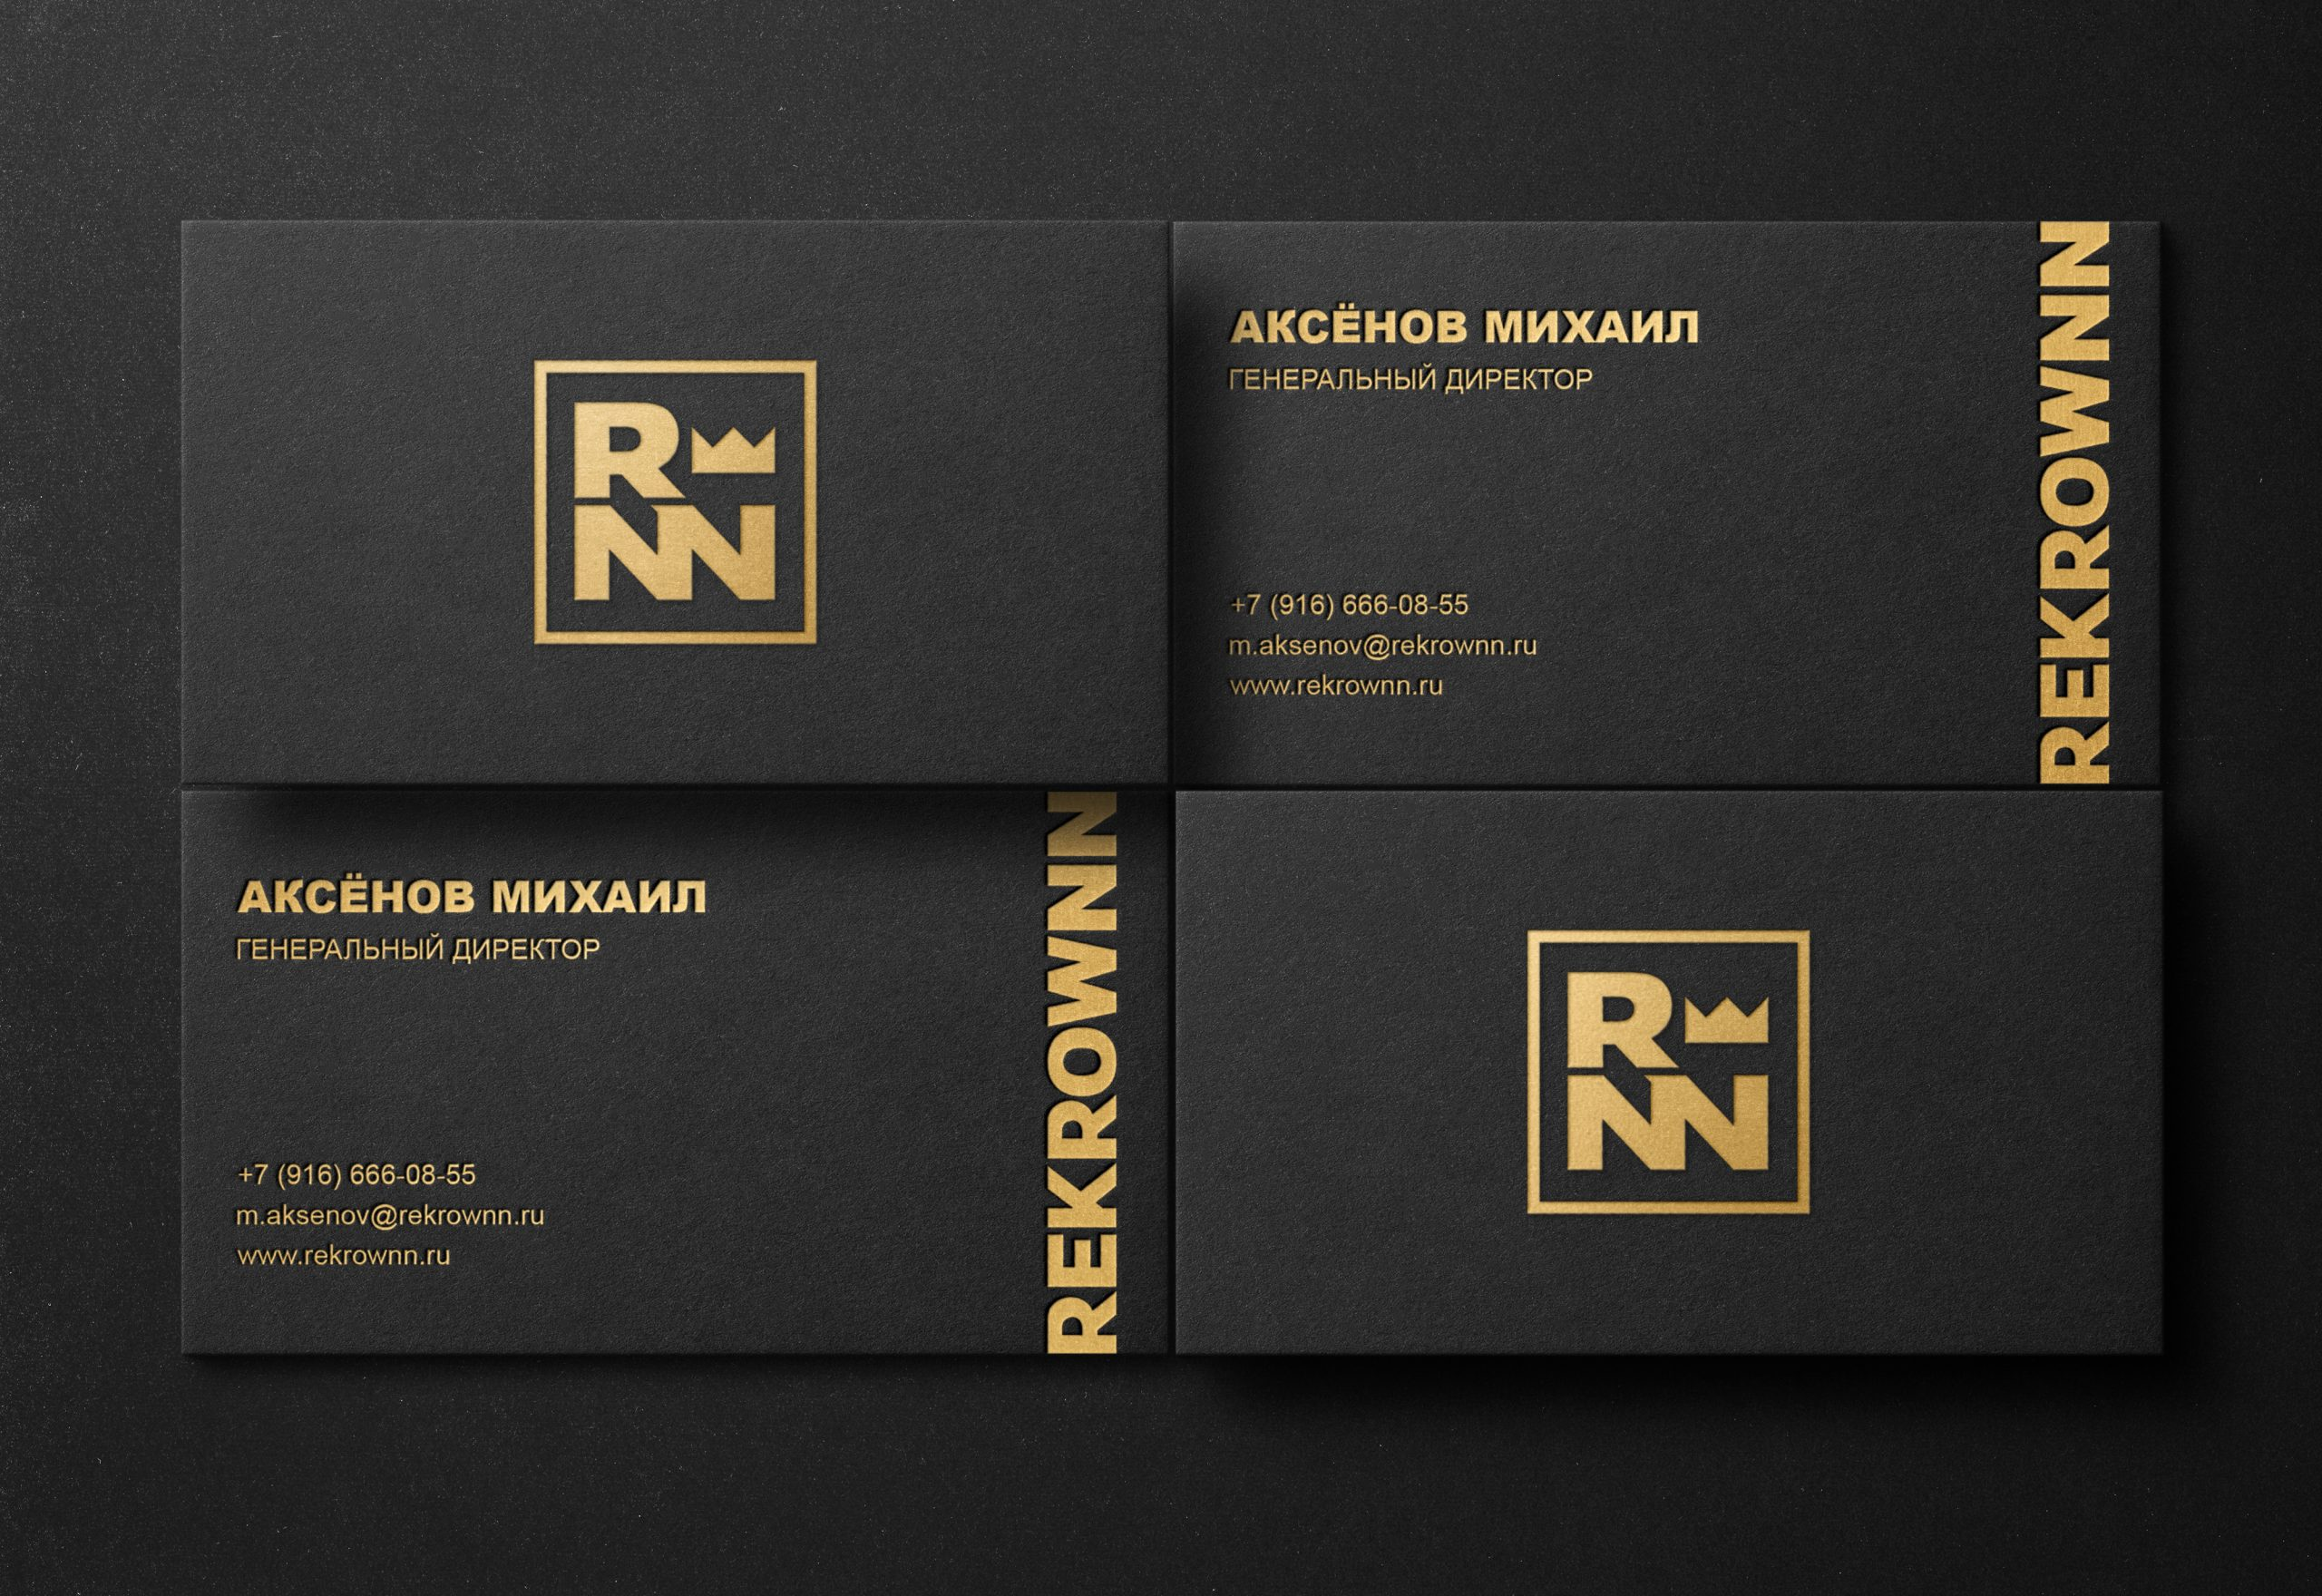 Rekrownn_business cards